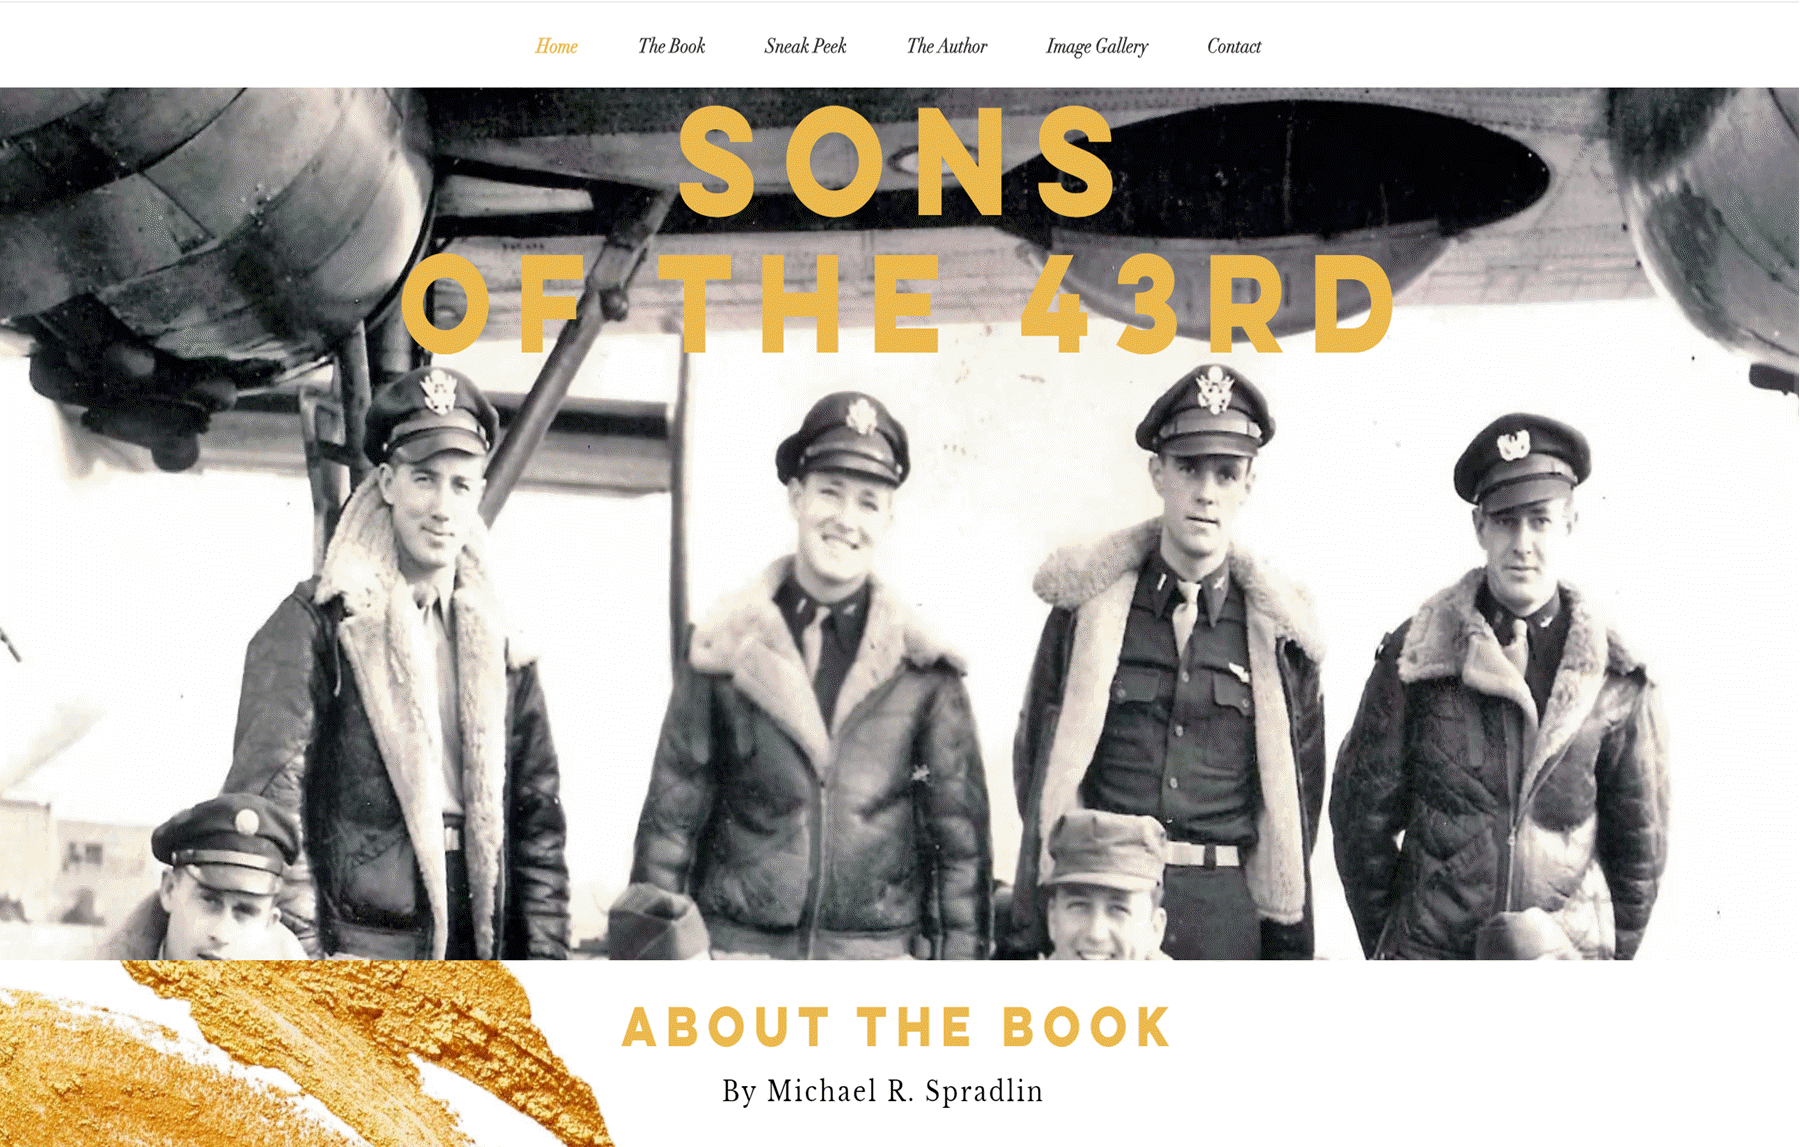 Sons of the 43rd by Michael Spradlin website